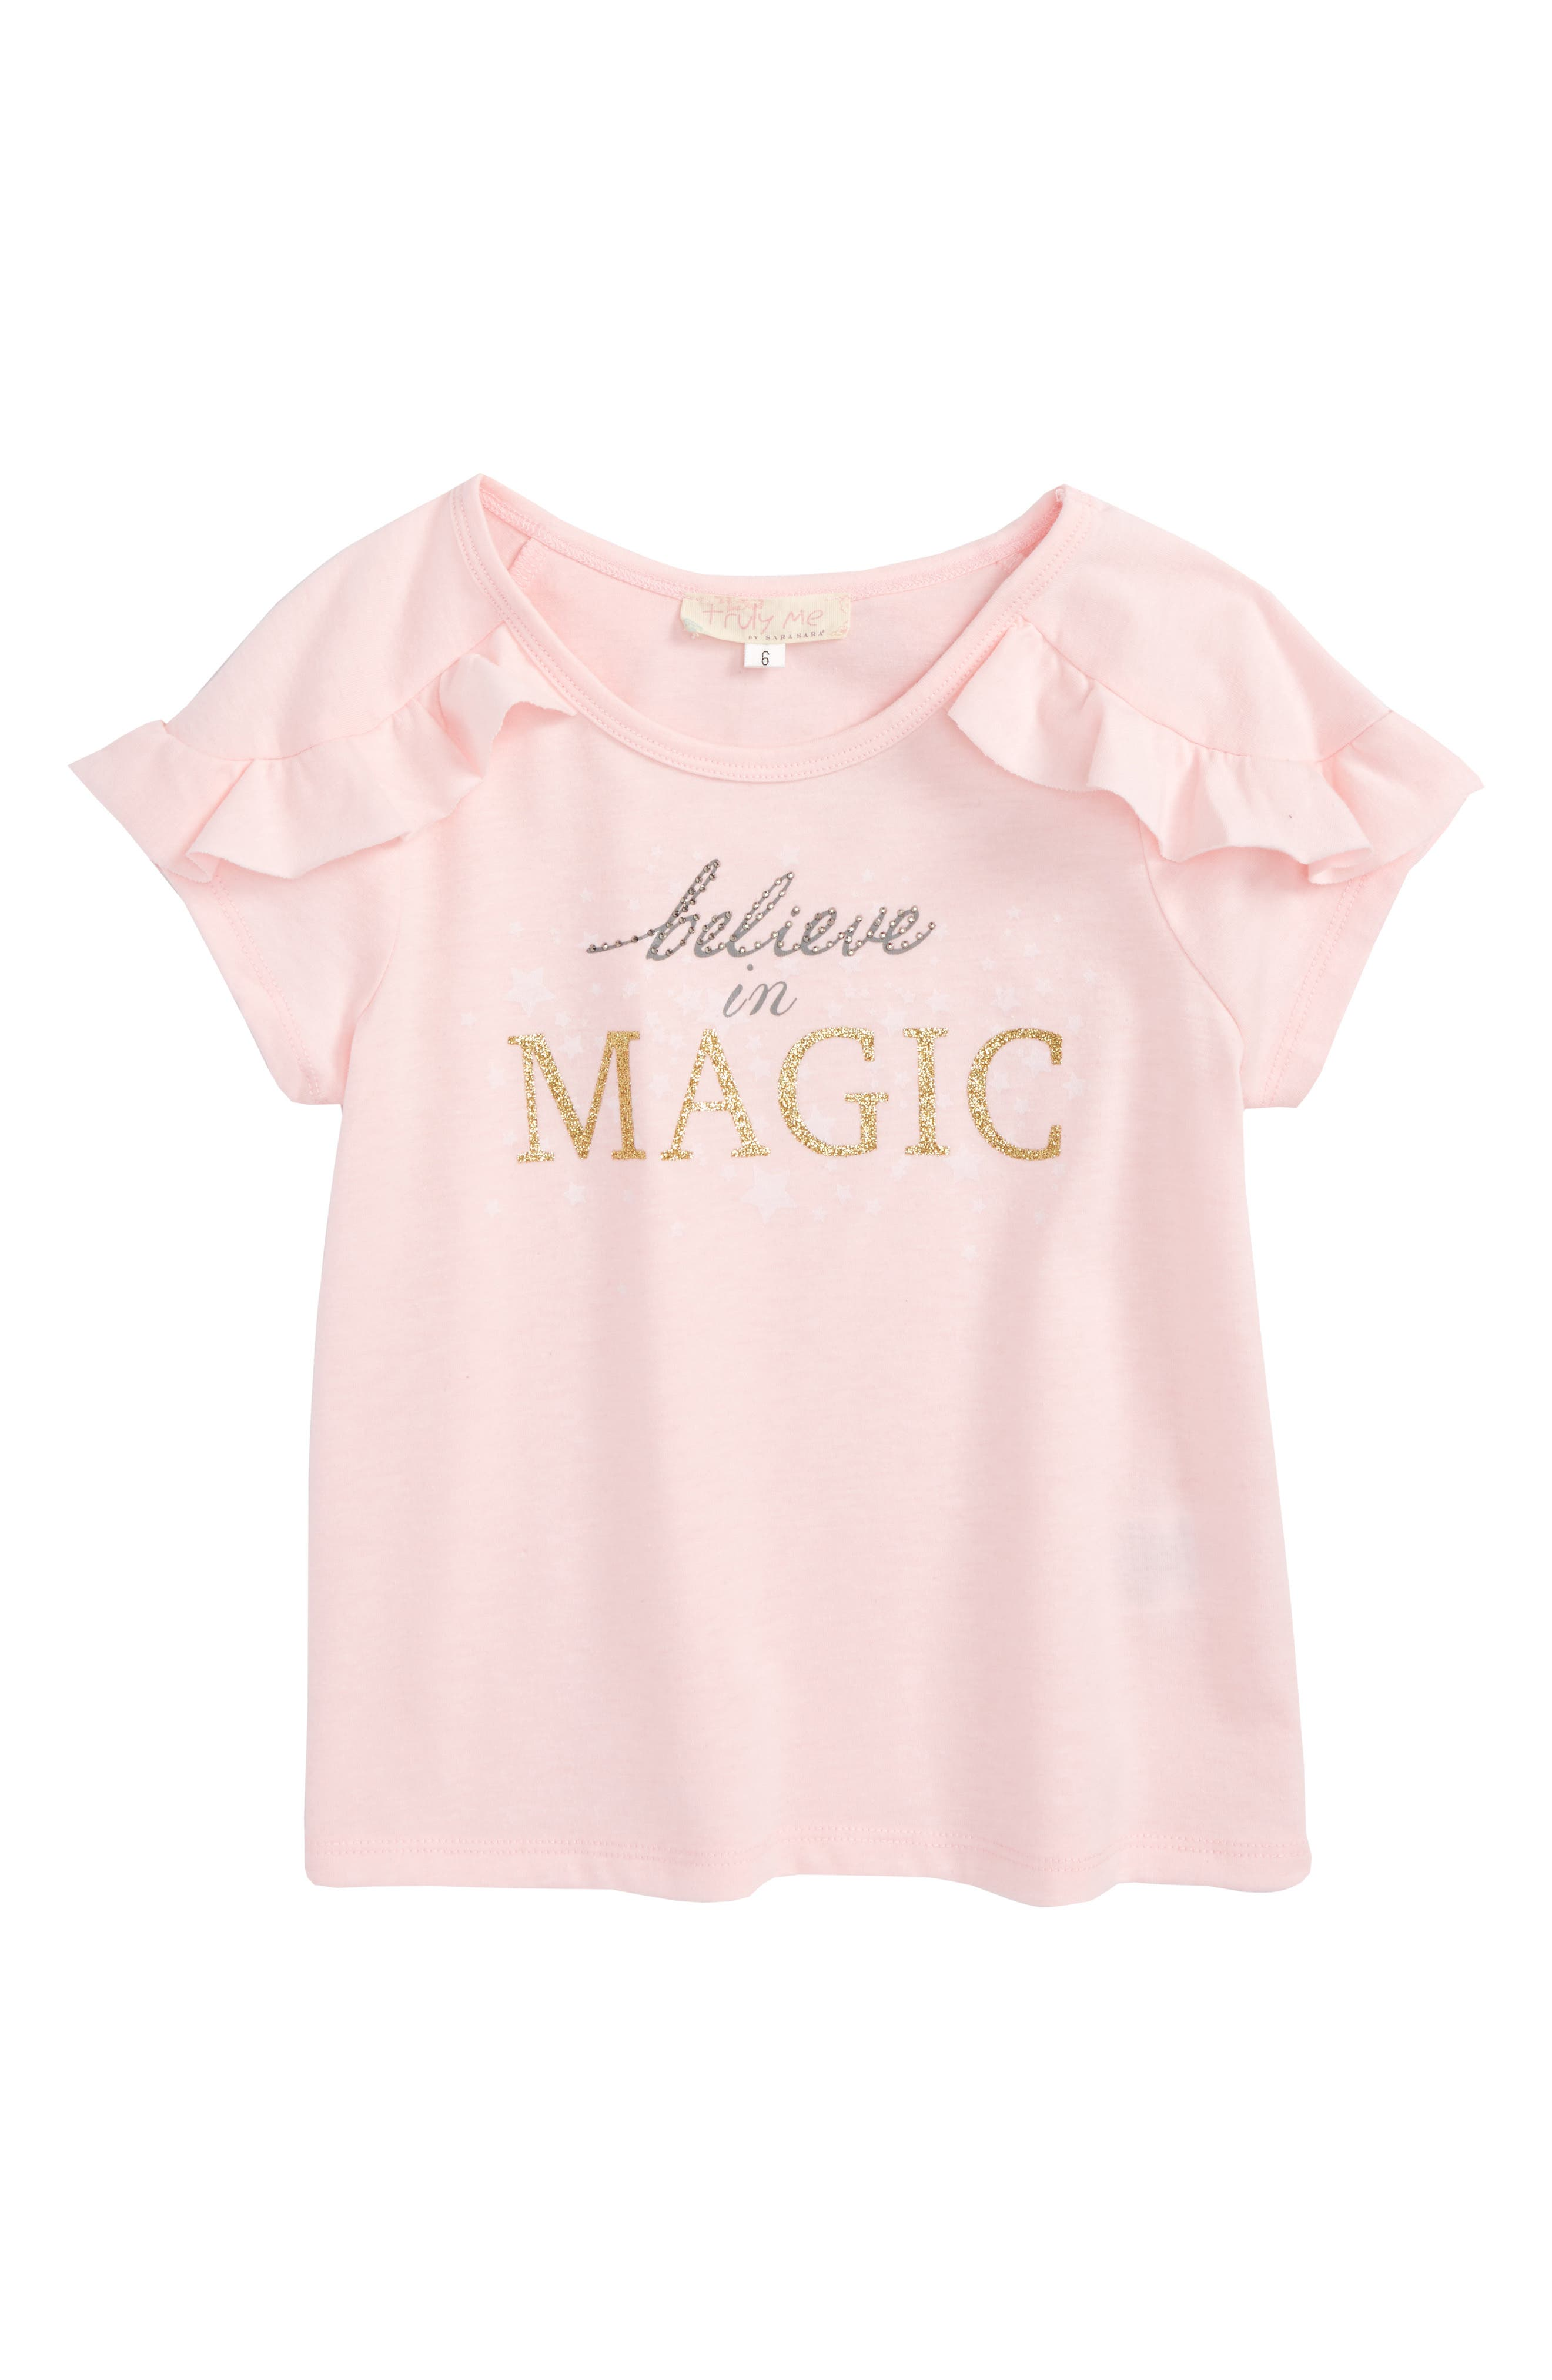 Believe In Magic Graphic Tee,                             Main thumbnail 1, color,                             White